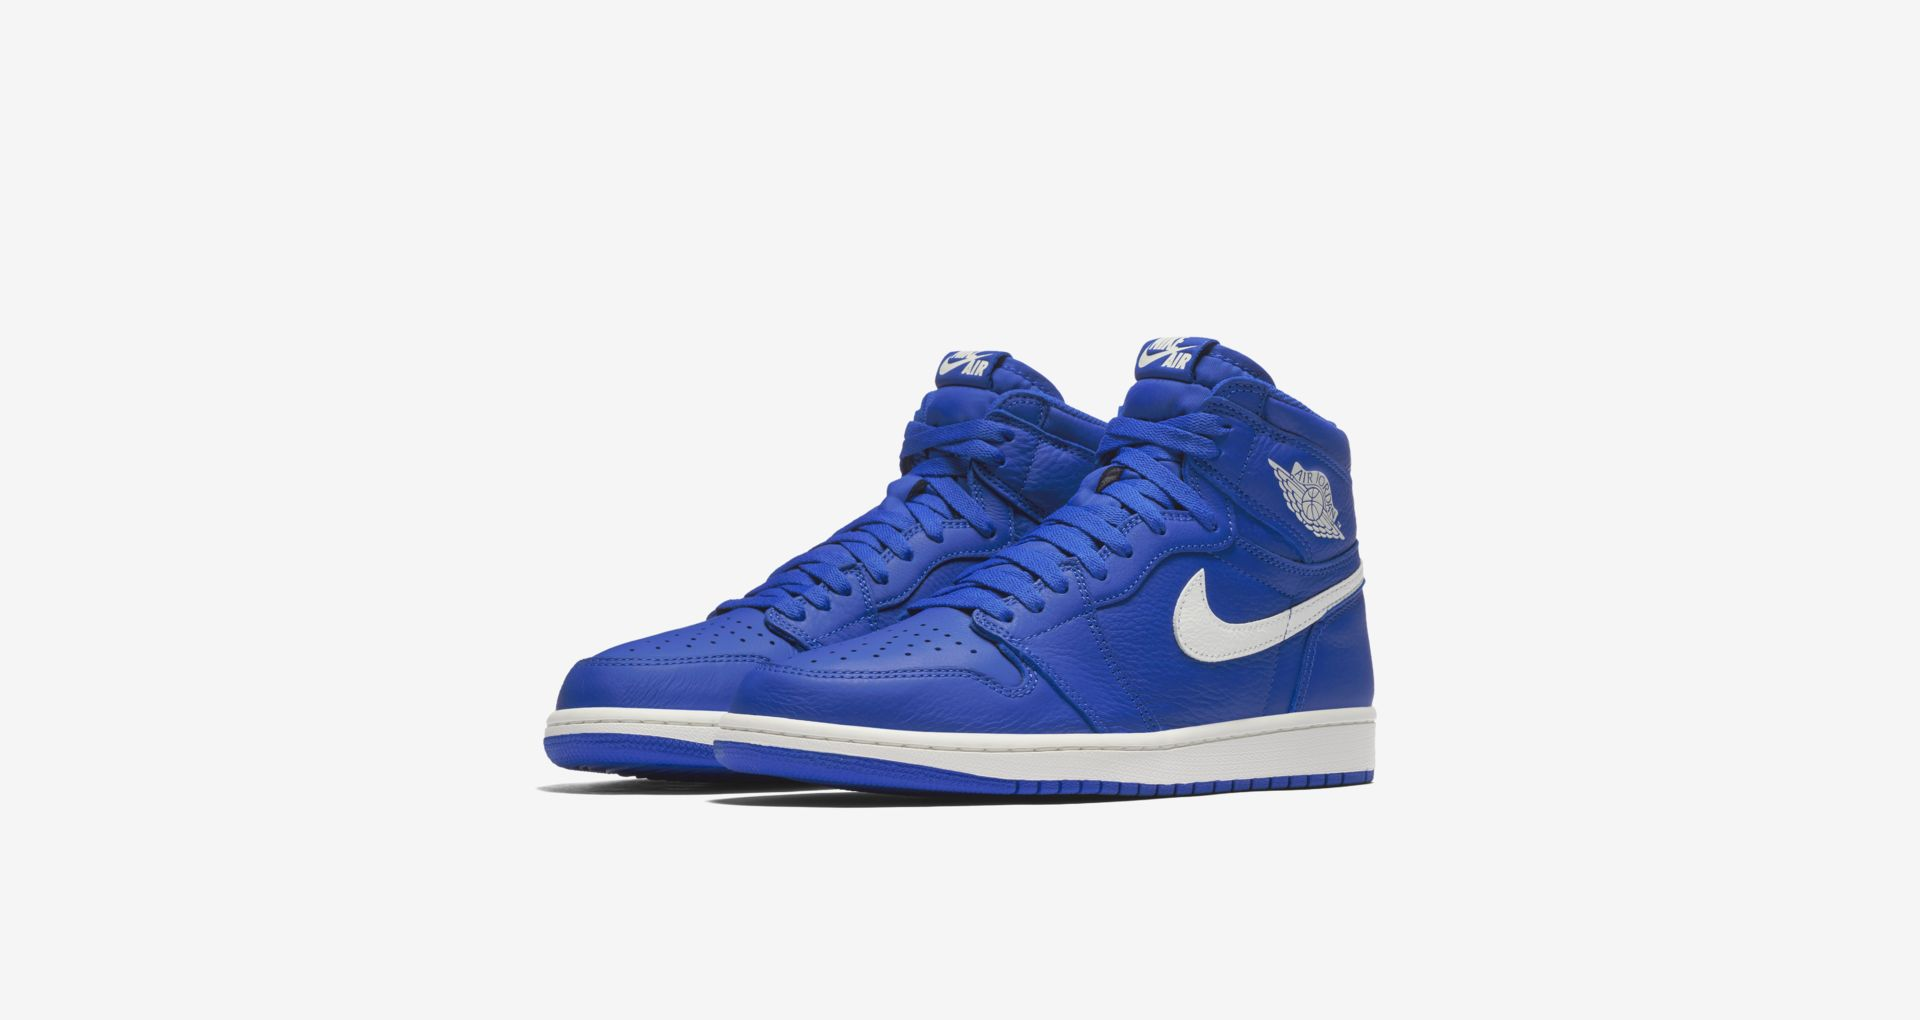 555088 401 Air Jordan 1 Hyper Royal 2